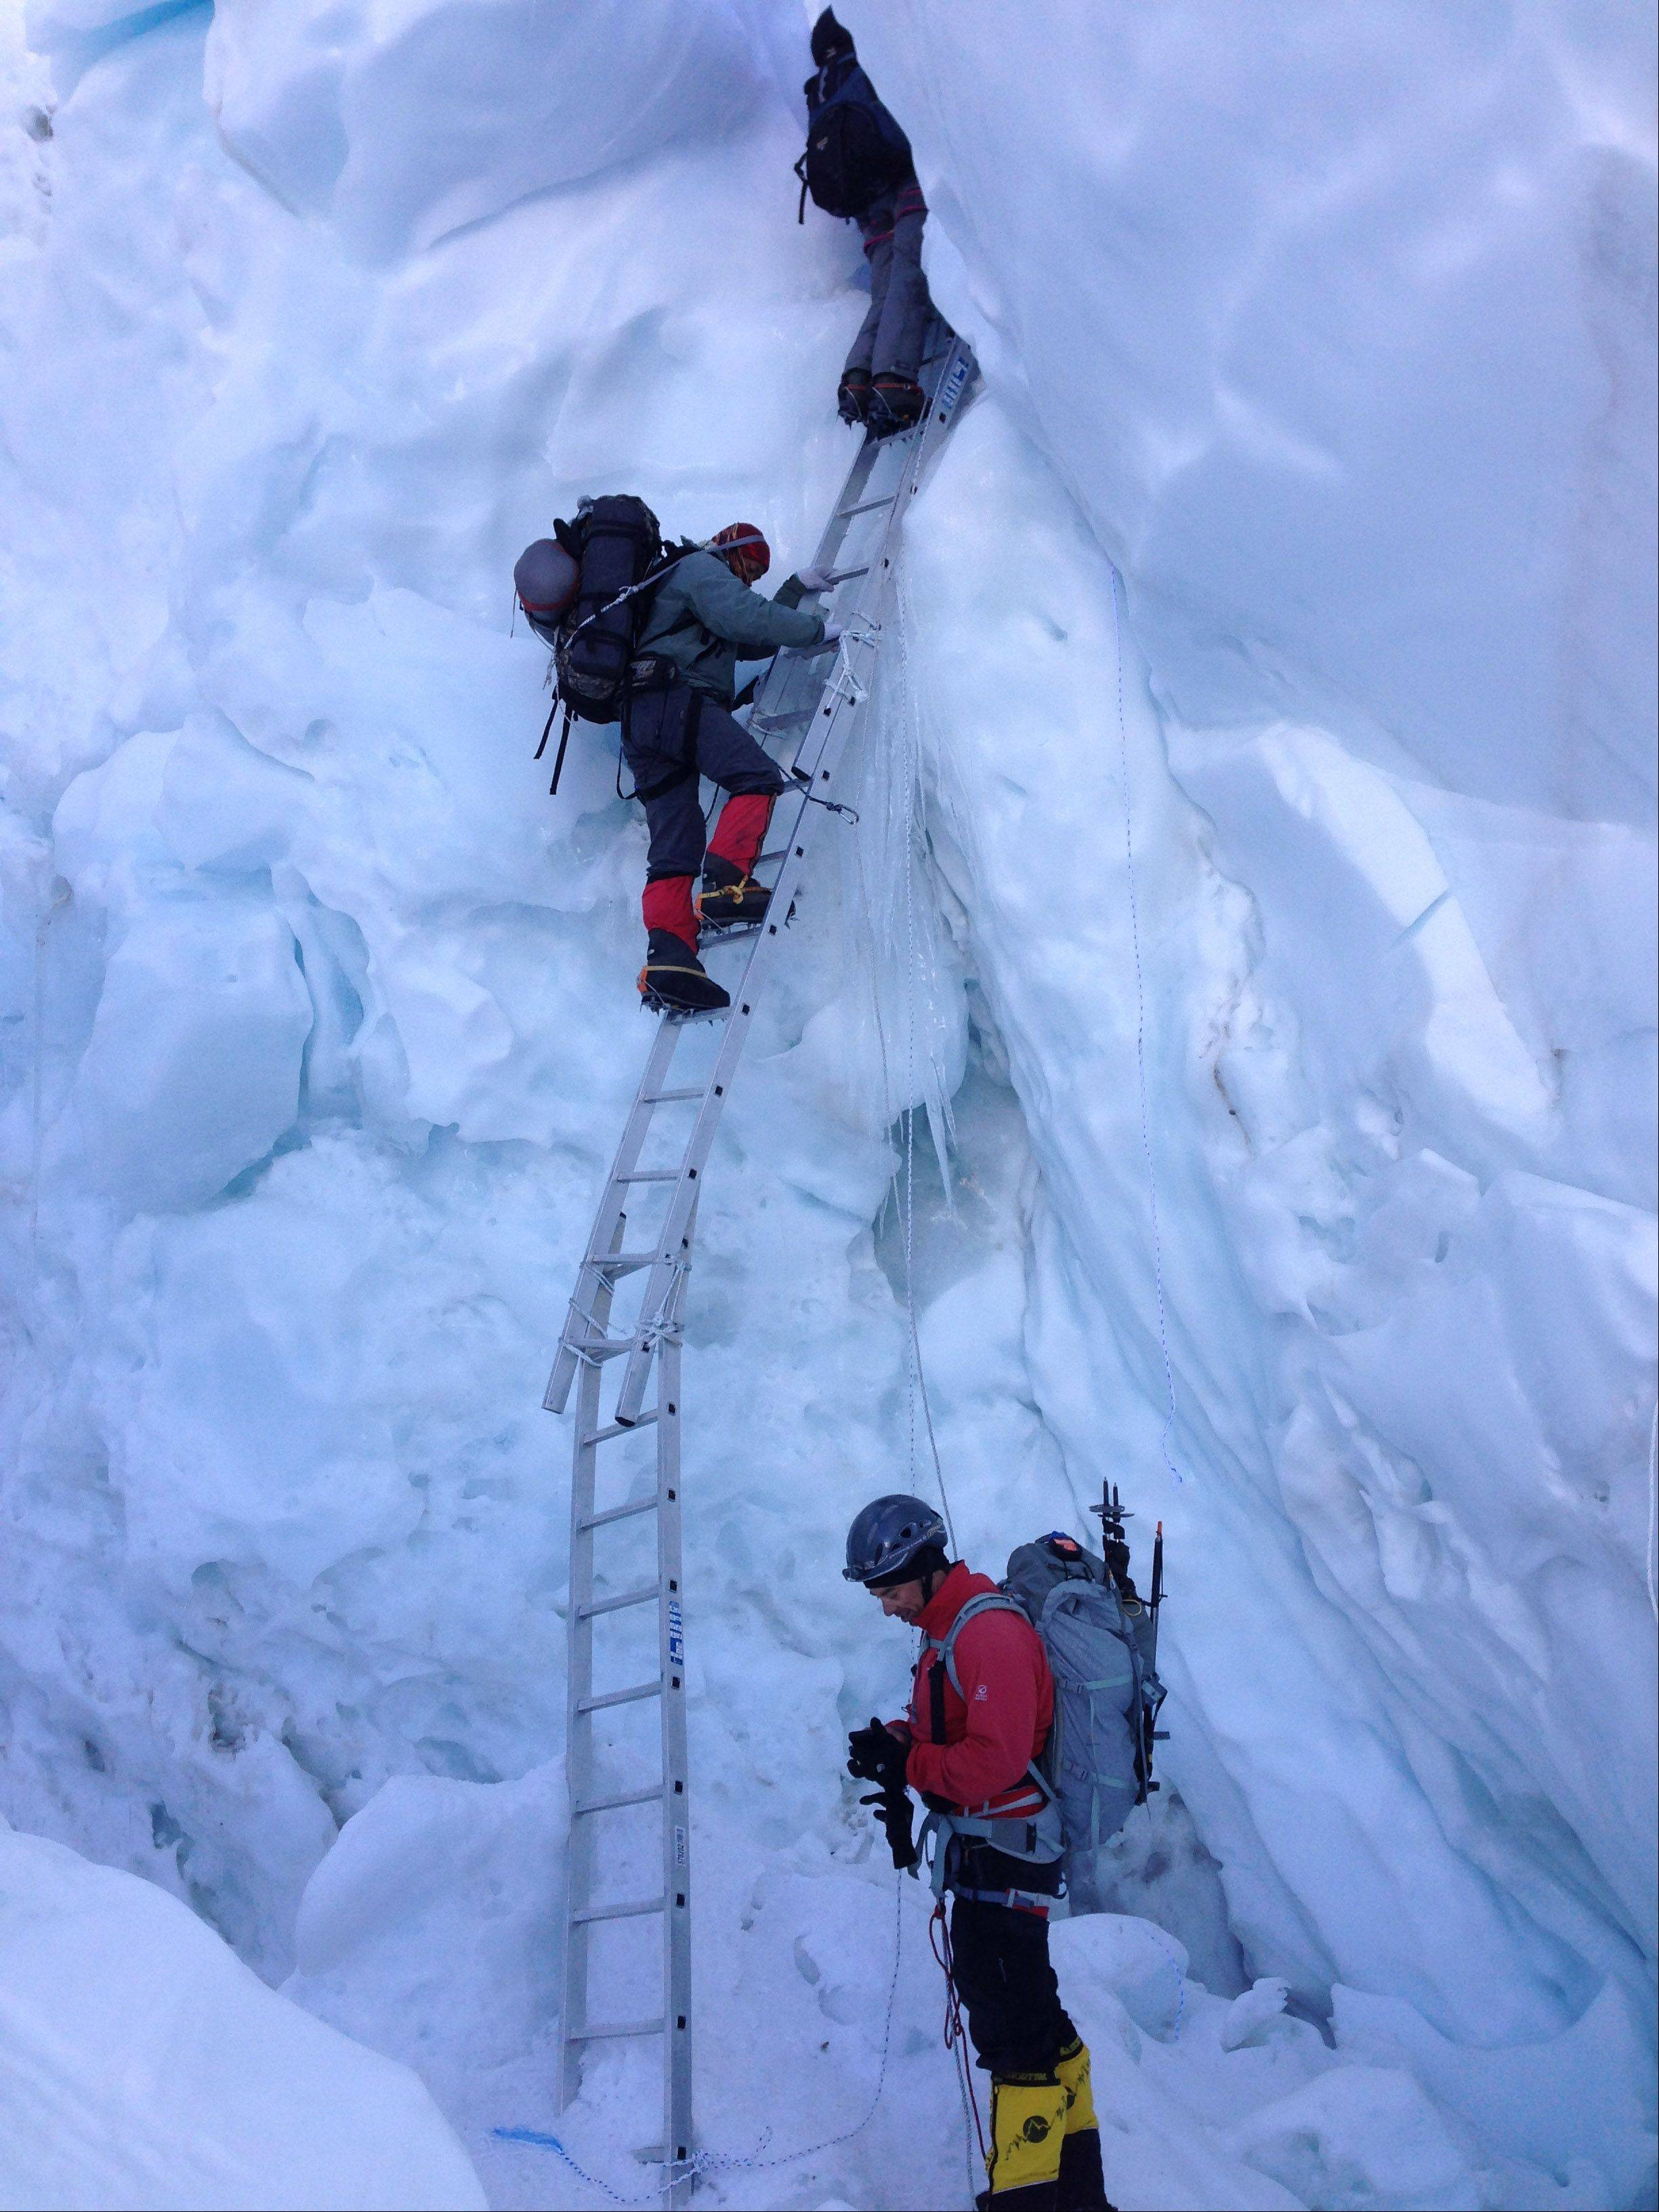 Roskelley took a picture of others also climbing up the Khumbu Icefall during his Mount Everest trip.